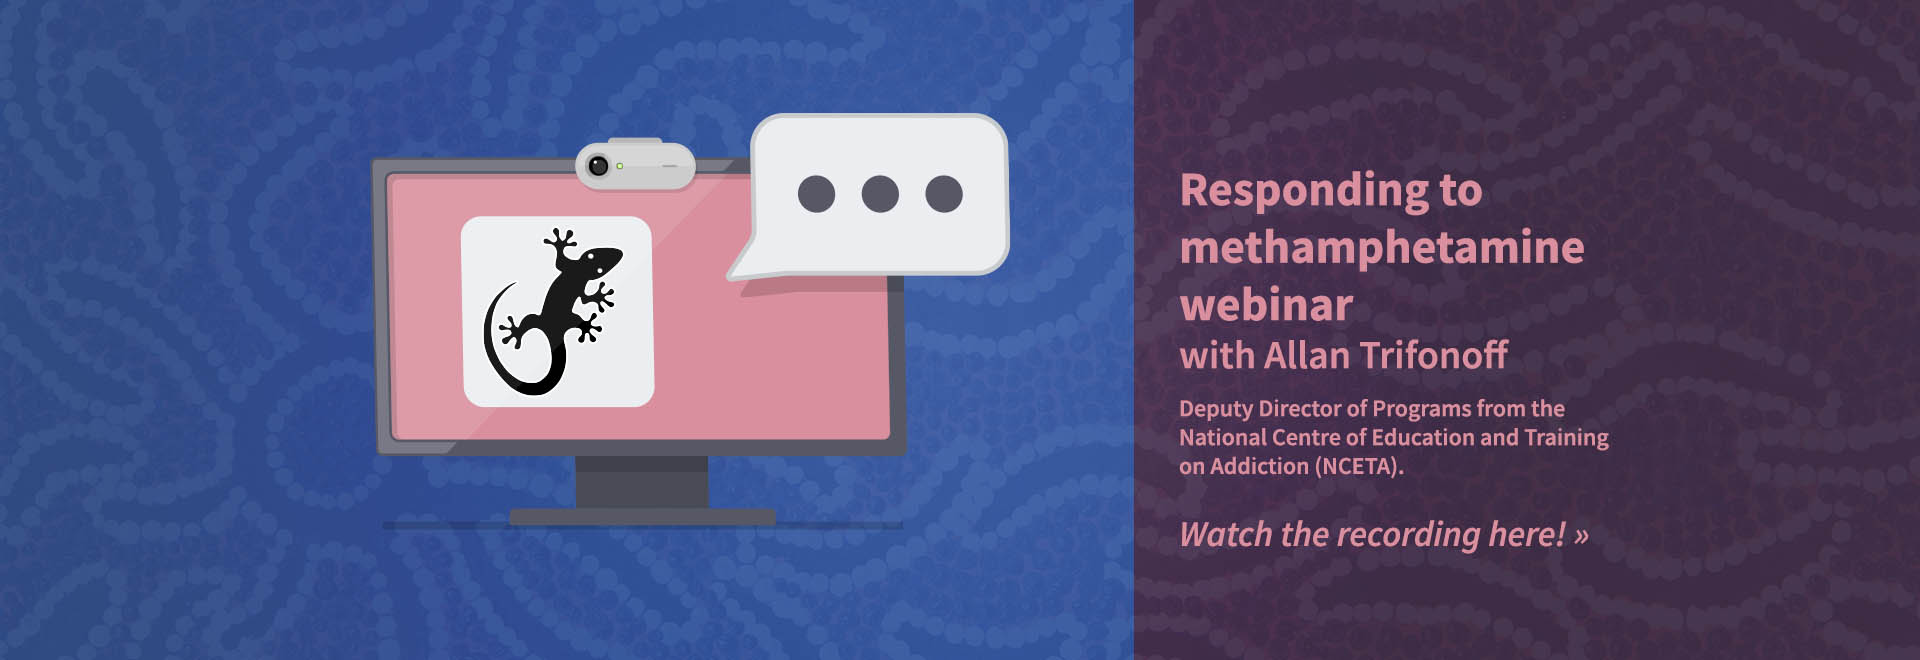 Responding to methamphetamine webinar